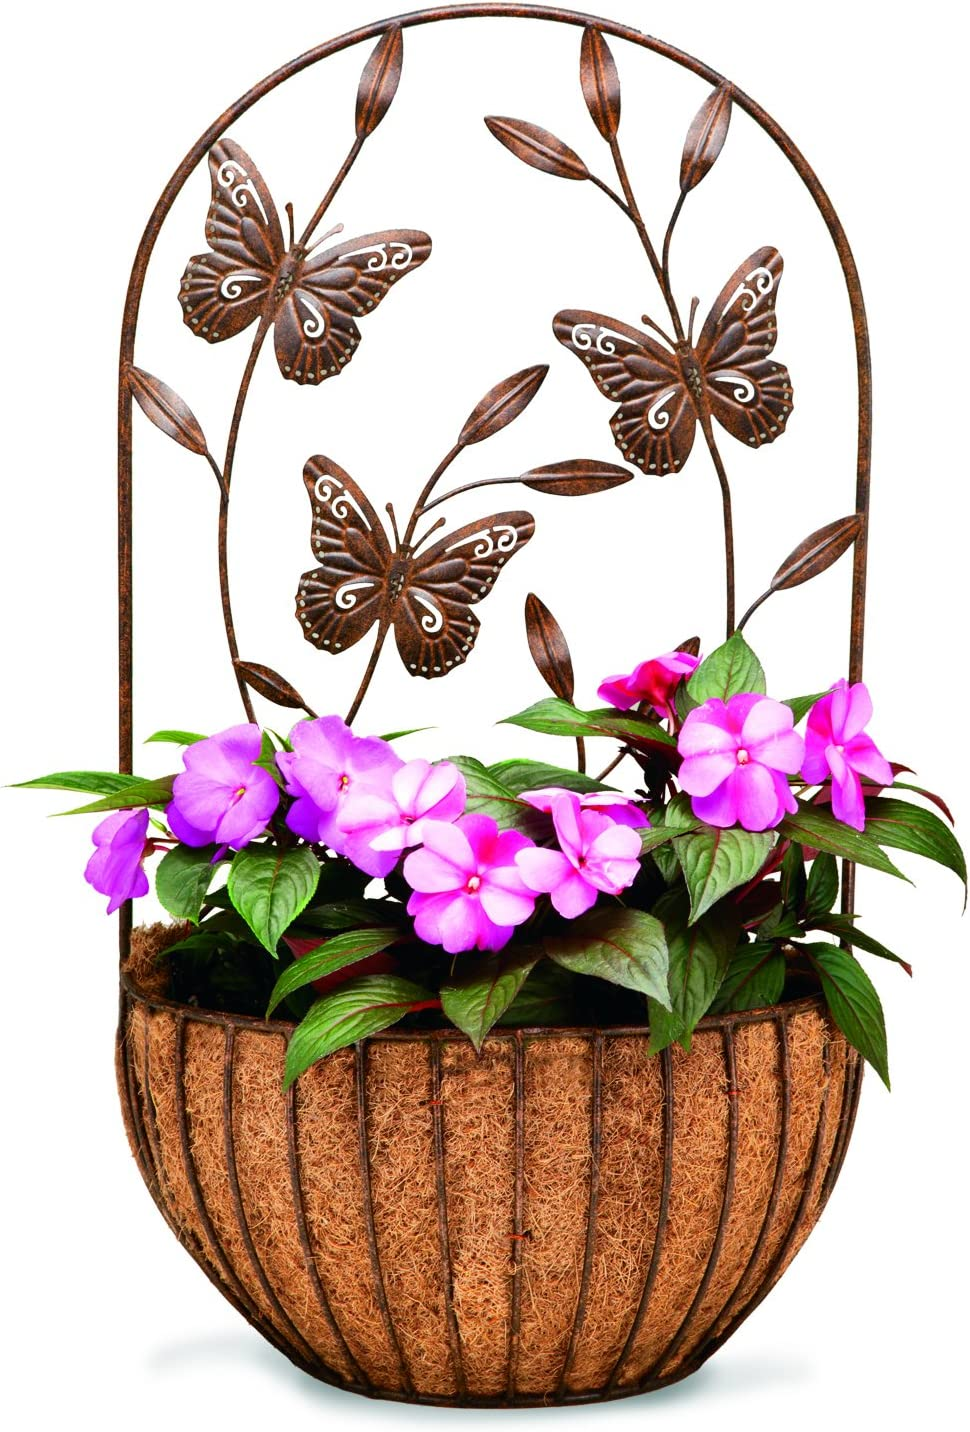 Deer Park Ironworks WB146 Park Ironworks Butterfly Wall Planter with Coco Liner